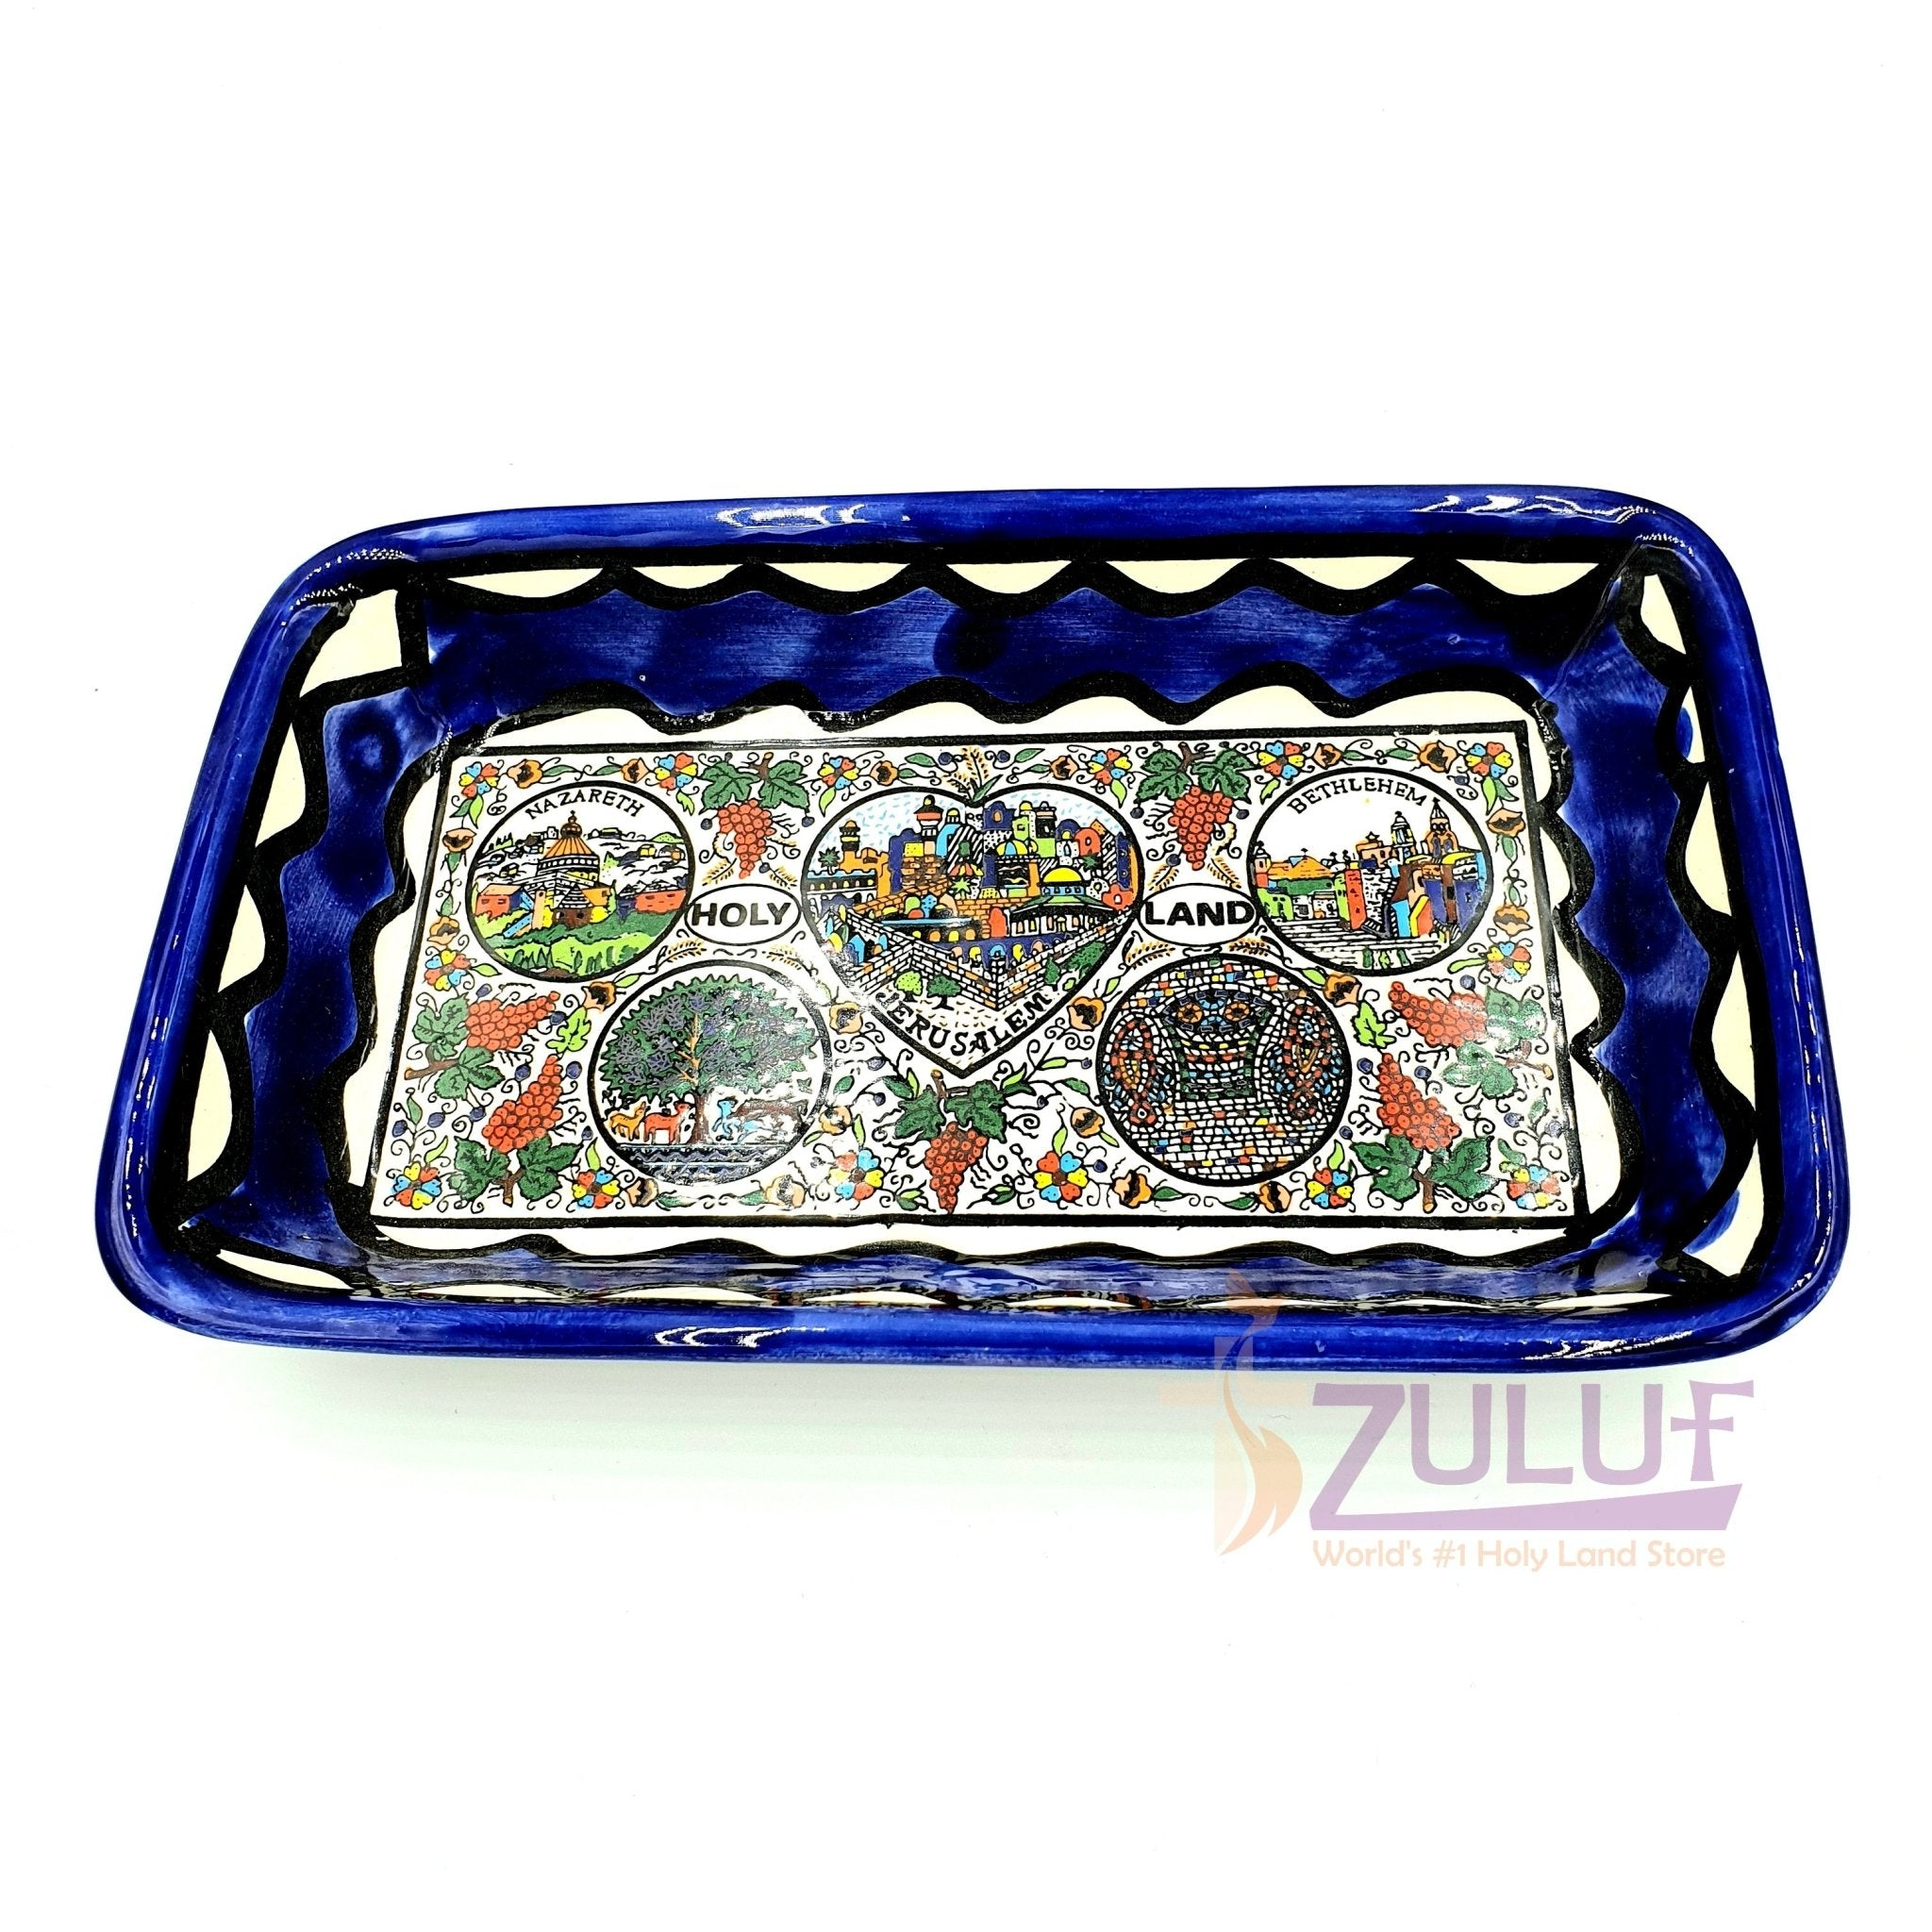 "pottery rectangular bowl 6.5 "" - Ceramic Bowl Tabgha Armenian Hand Painted by Zuluf - CER028 - Zuluf"